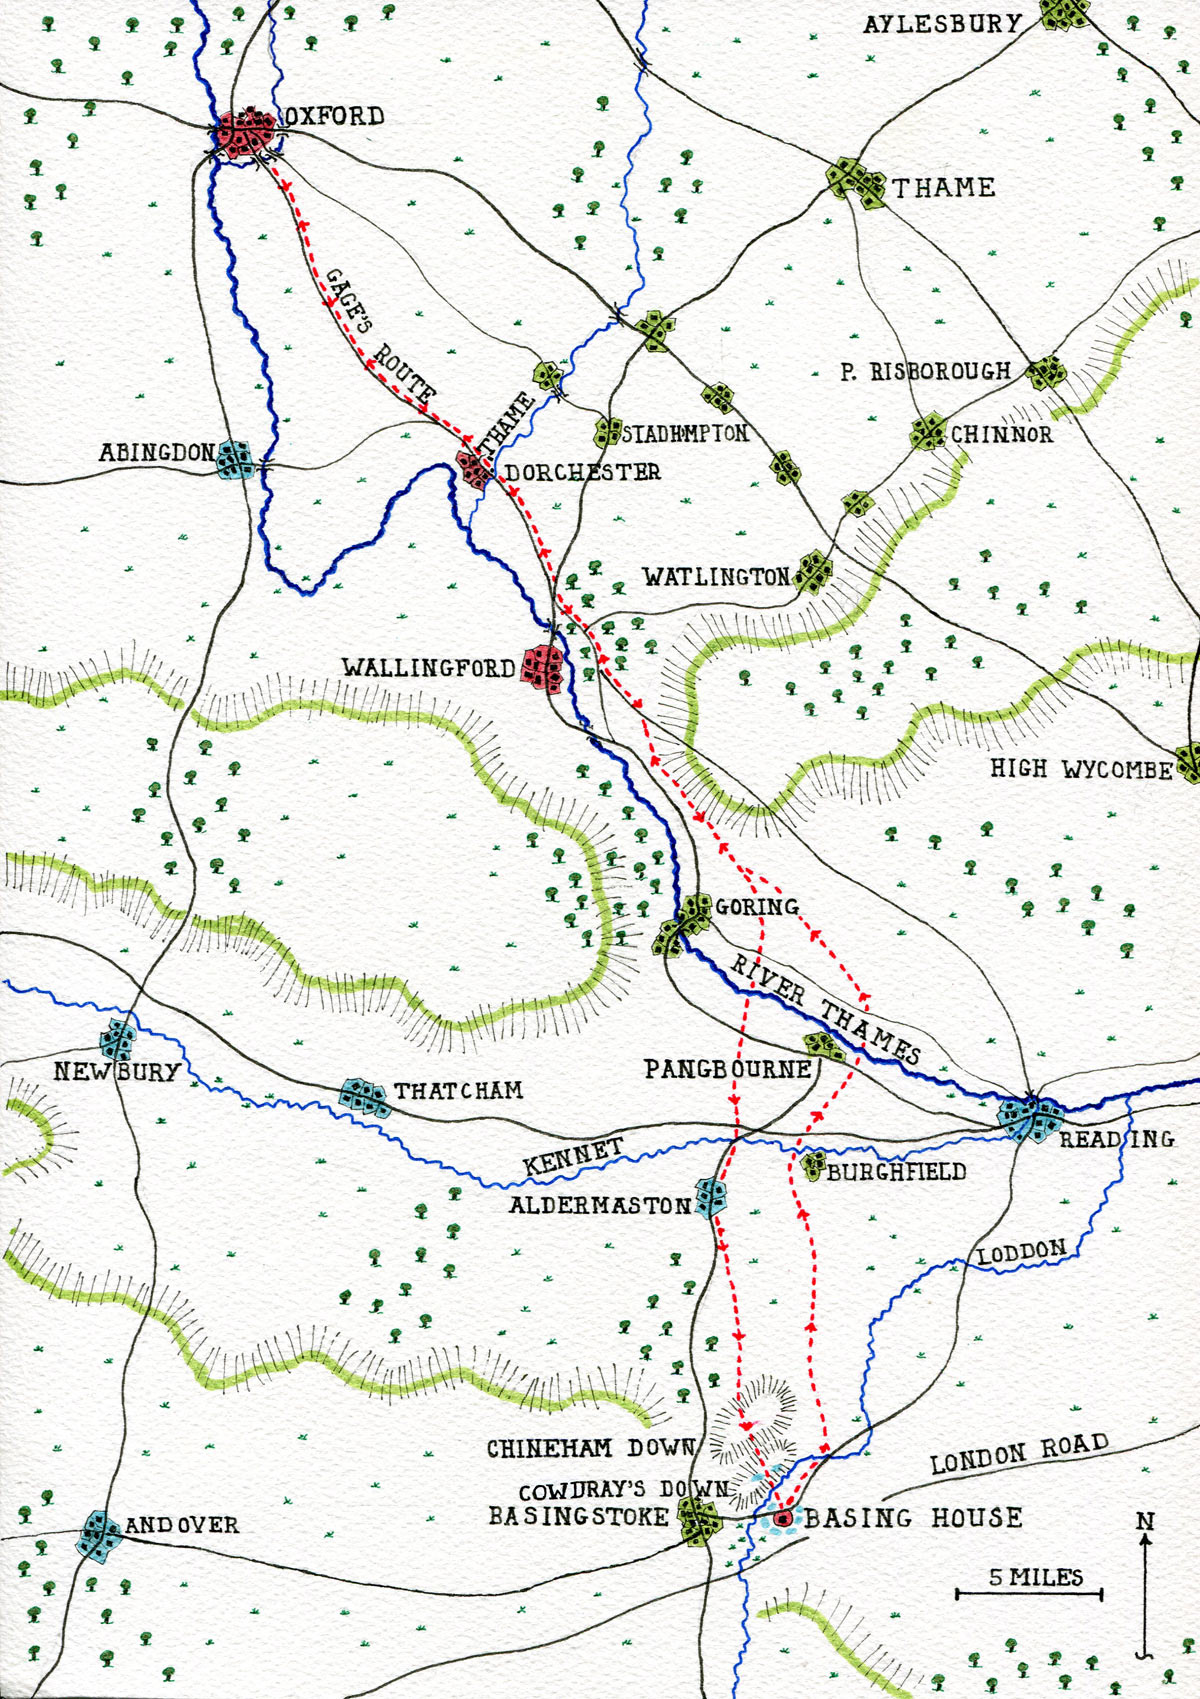 Map of Colonel Gage's route from Oxford to Basing House on 9th and 10th September 1644 and his return to Oxford on 12th September 1644: Siege of Basing House 1642 to 1645 during the English Civil War: map by John Fawkes